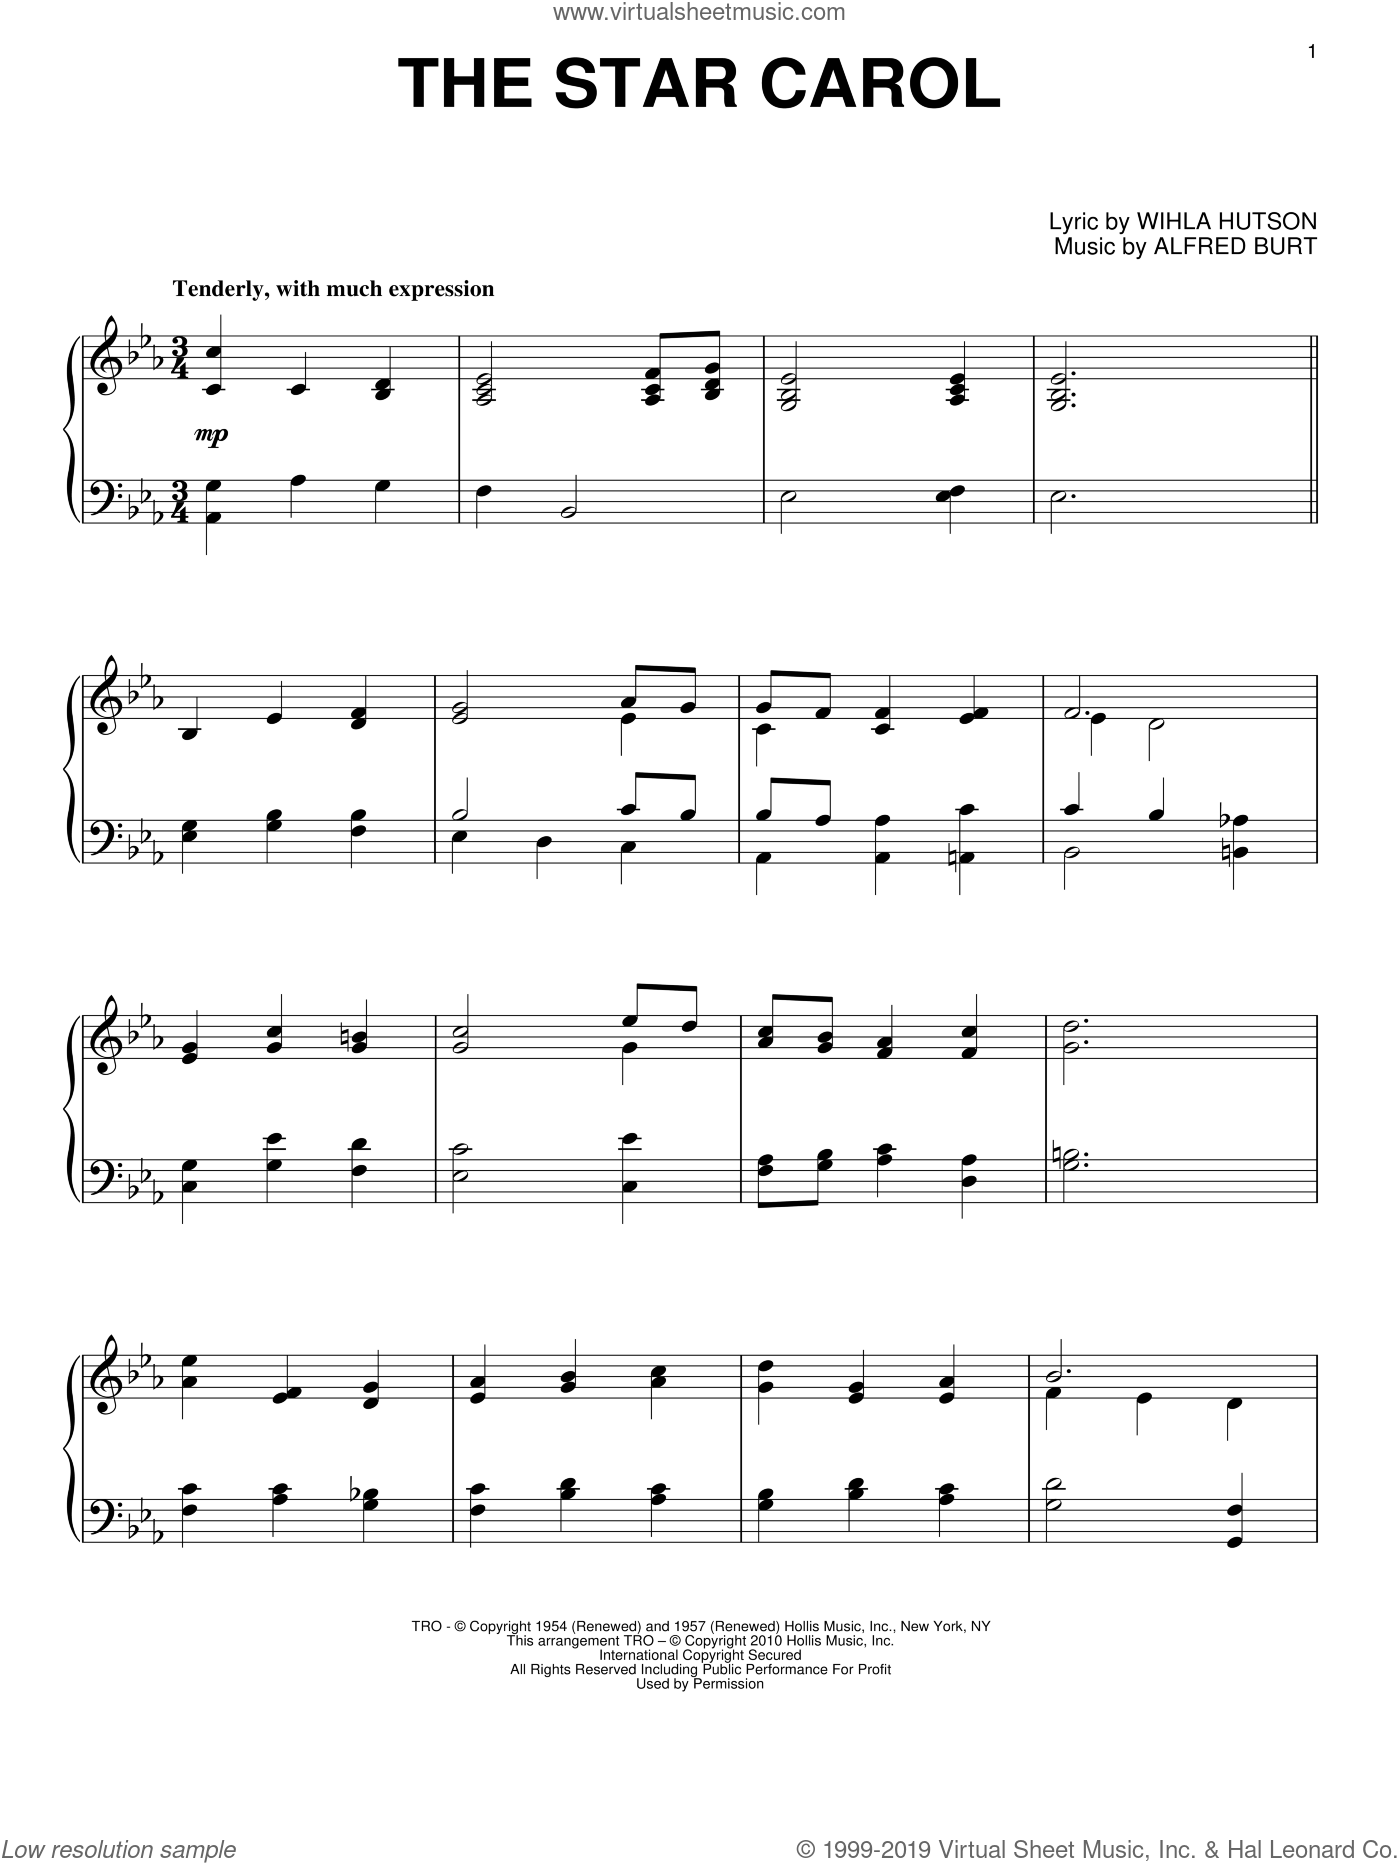 The Star Carol sheet music for piano solo by Wihla Hutson